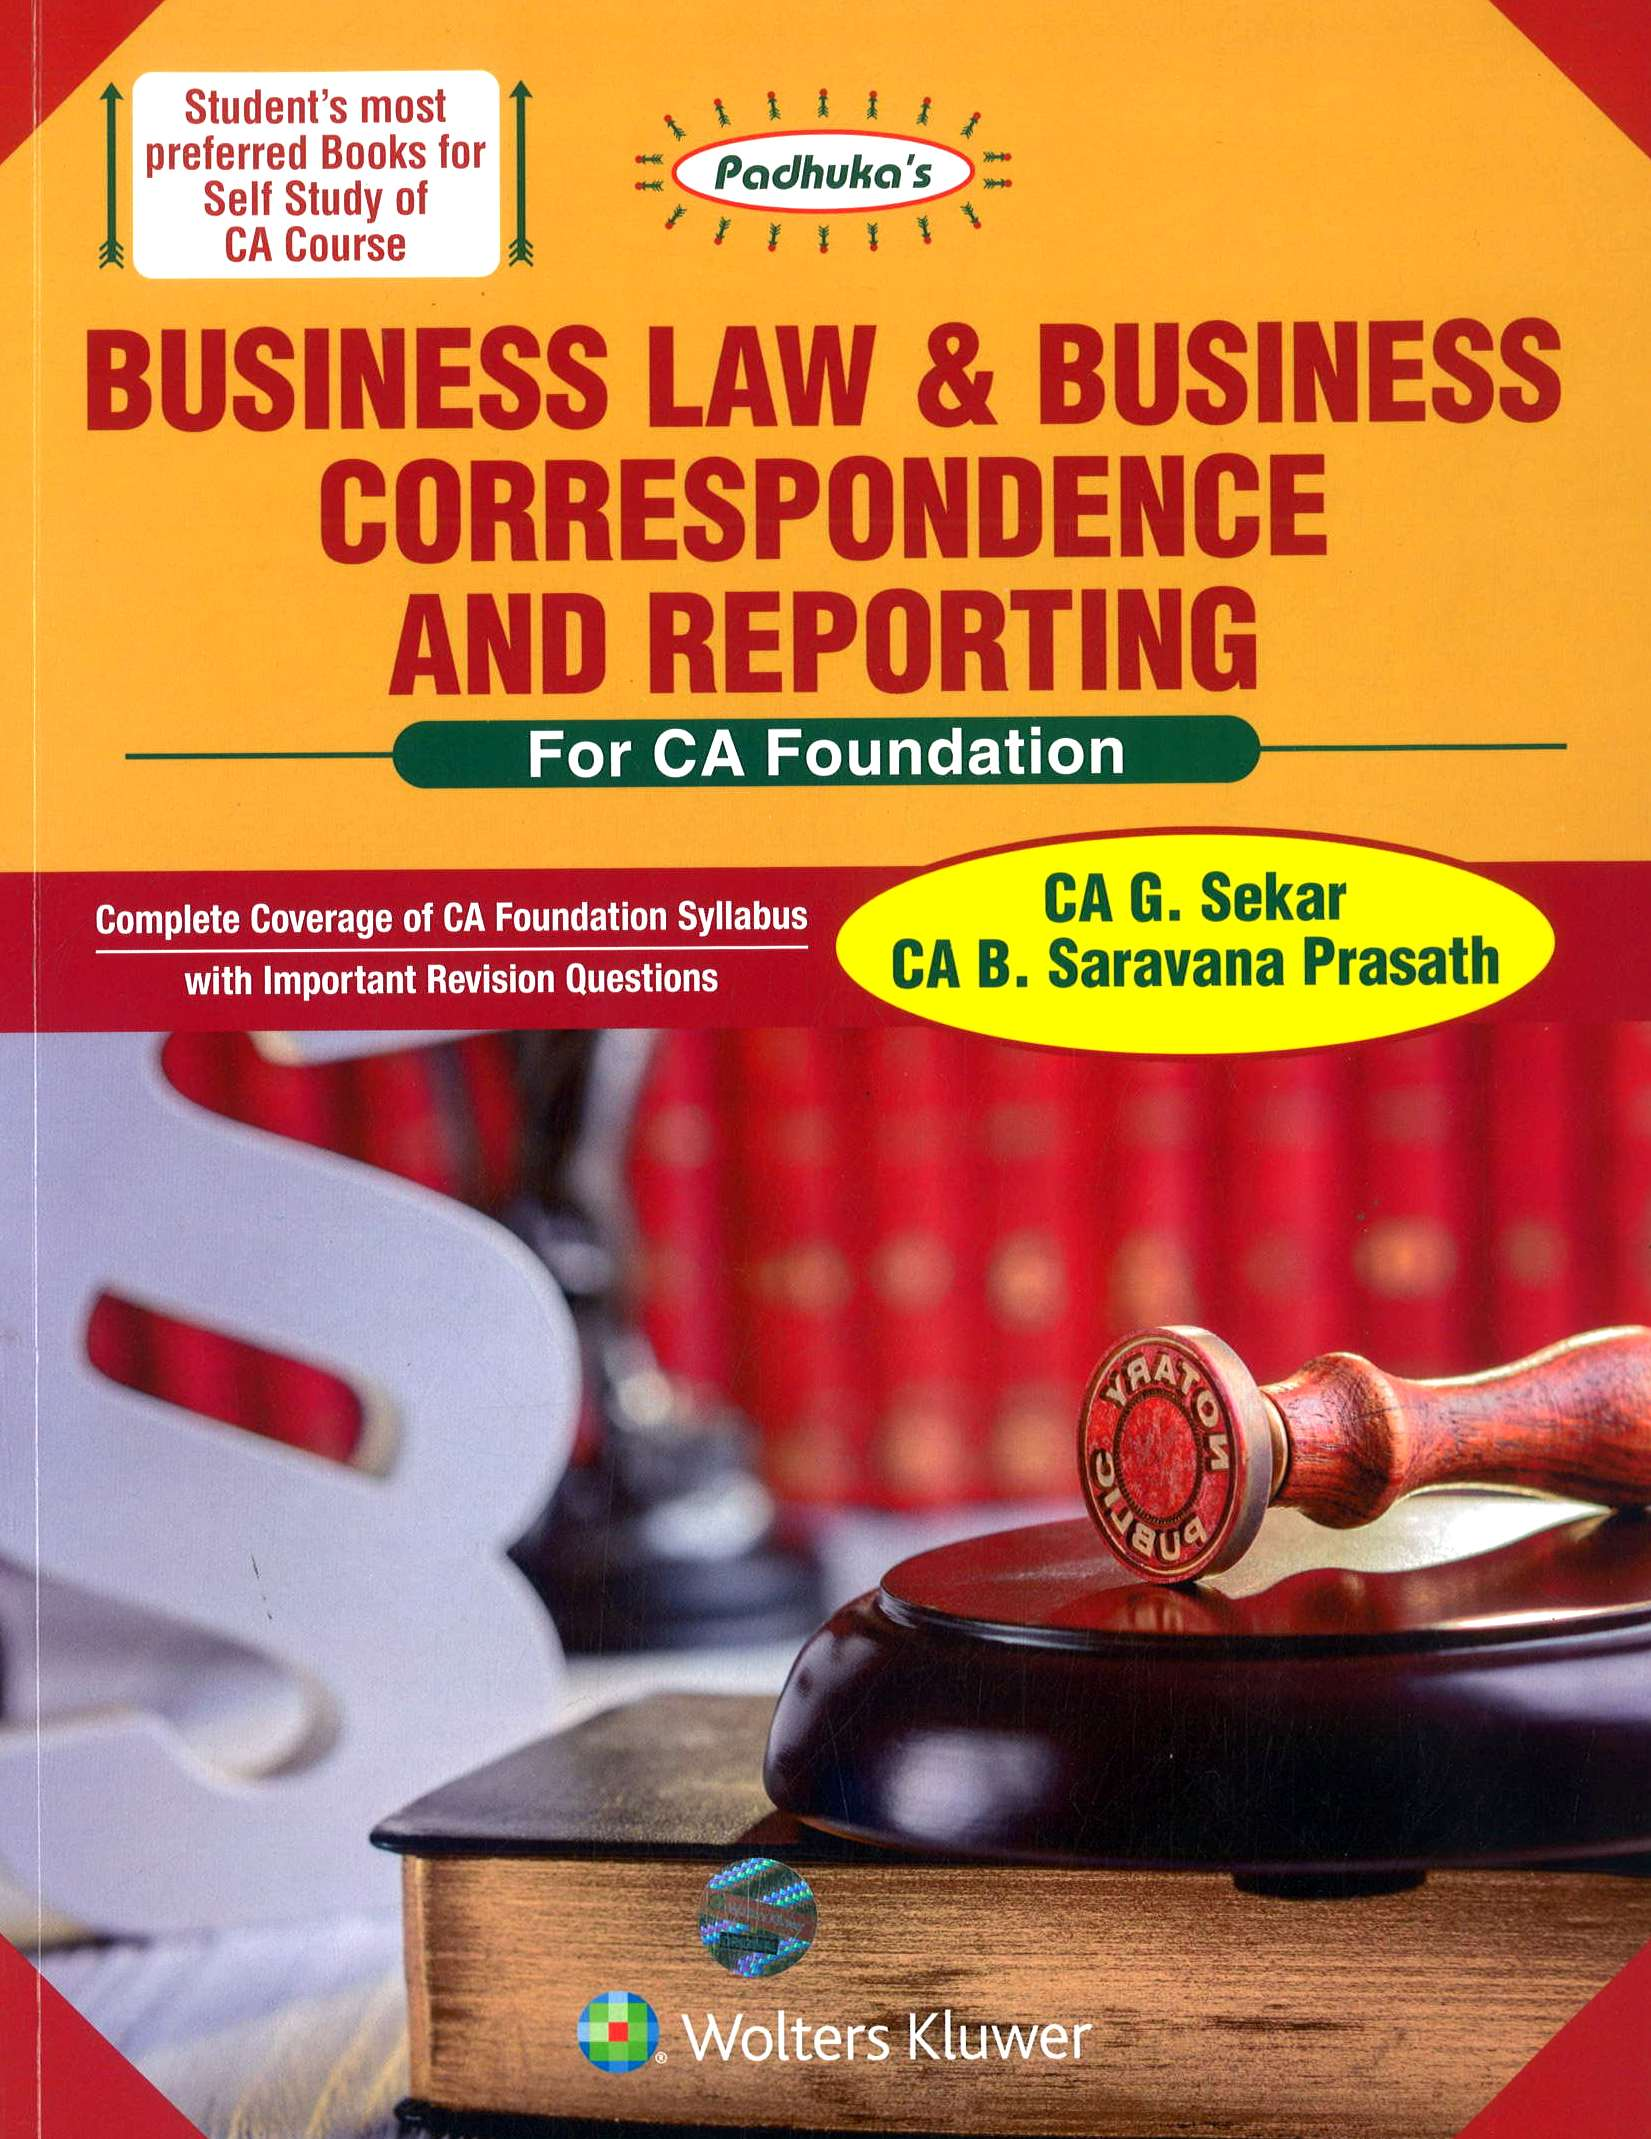 CCH Padhuka Business Law & Business Correspondence And Reporting for CA Foundation By CA G. Sekar B. Saravana Prasath Applicable for June 2018 Exam Edition 2018